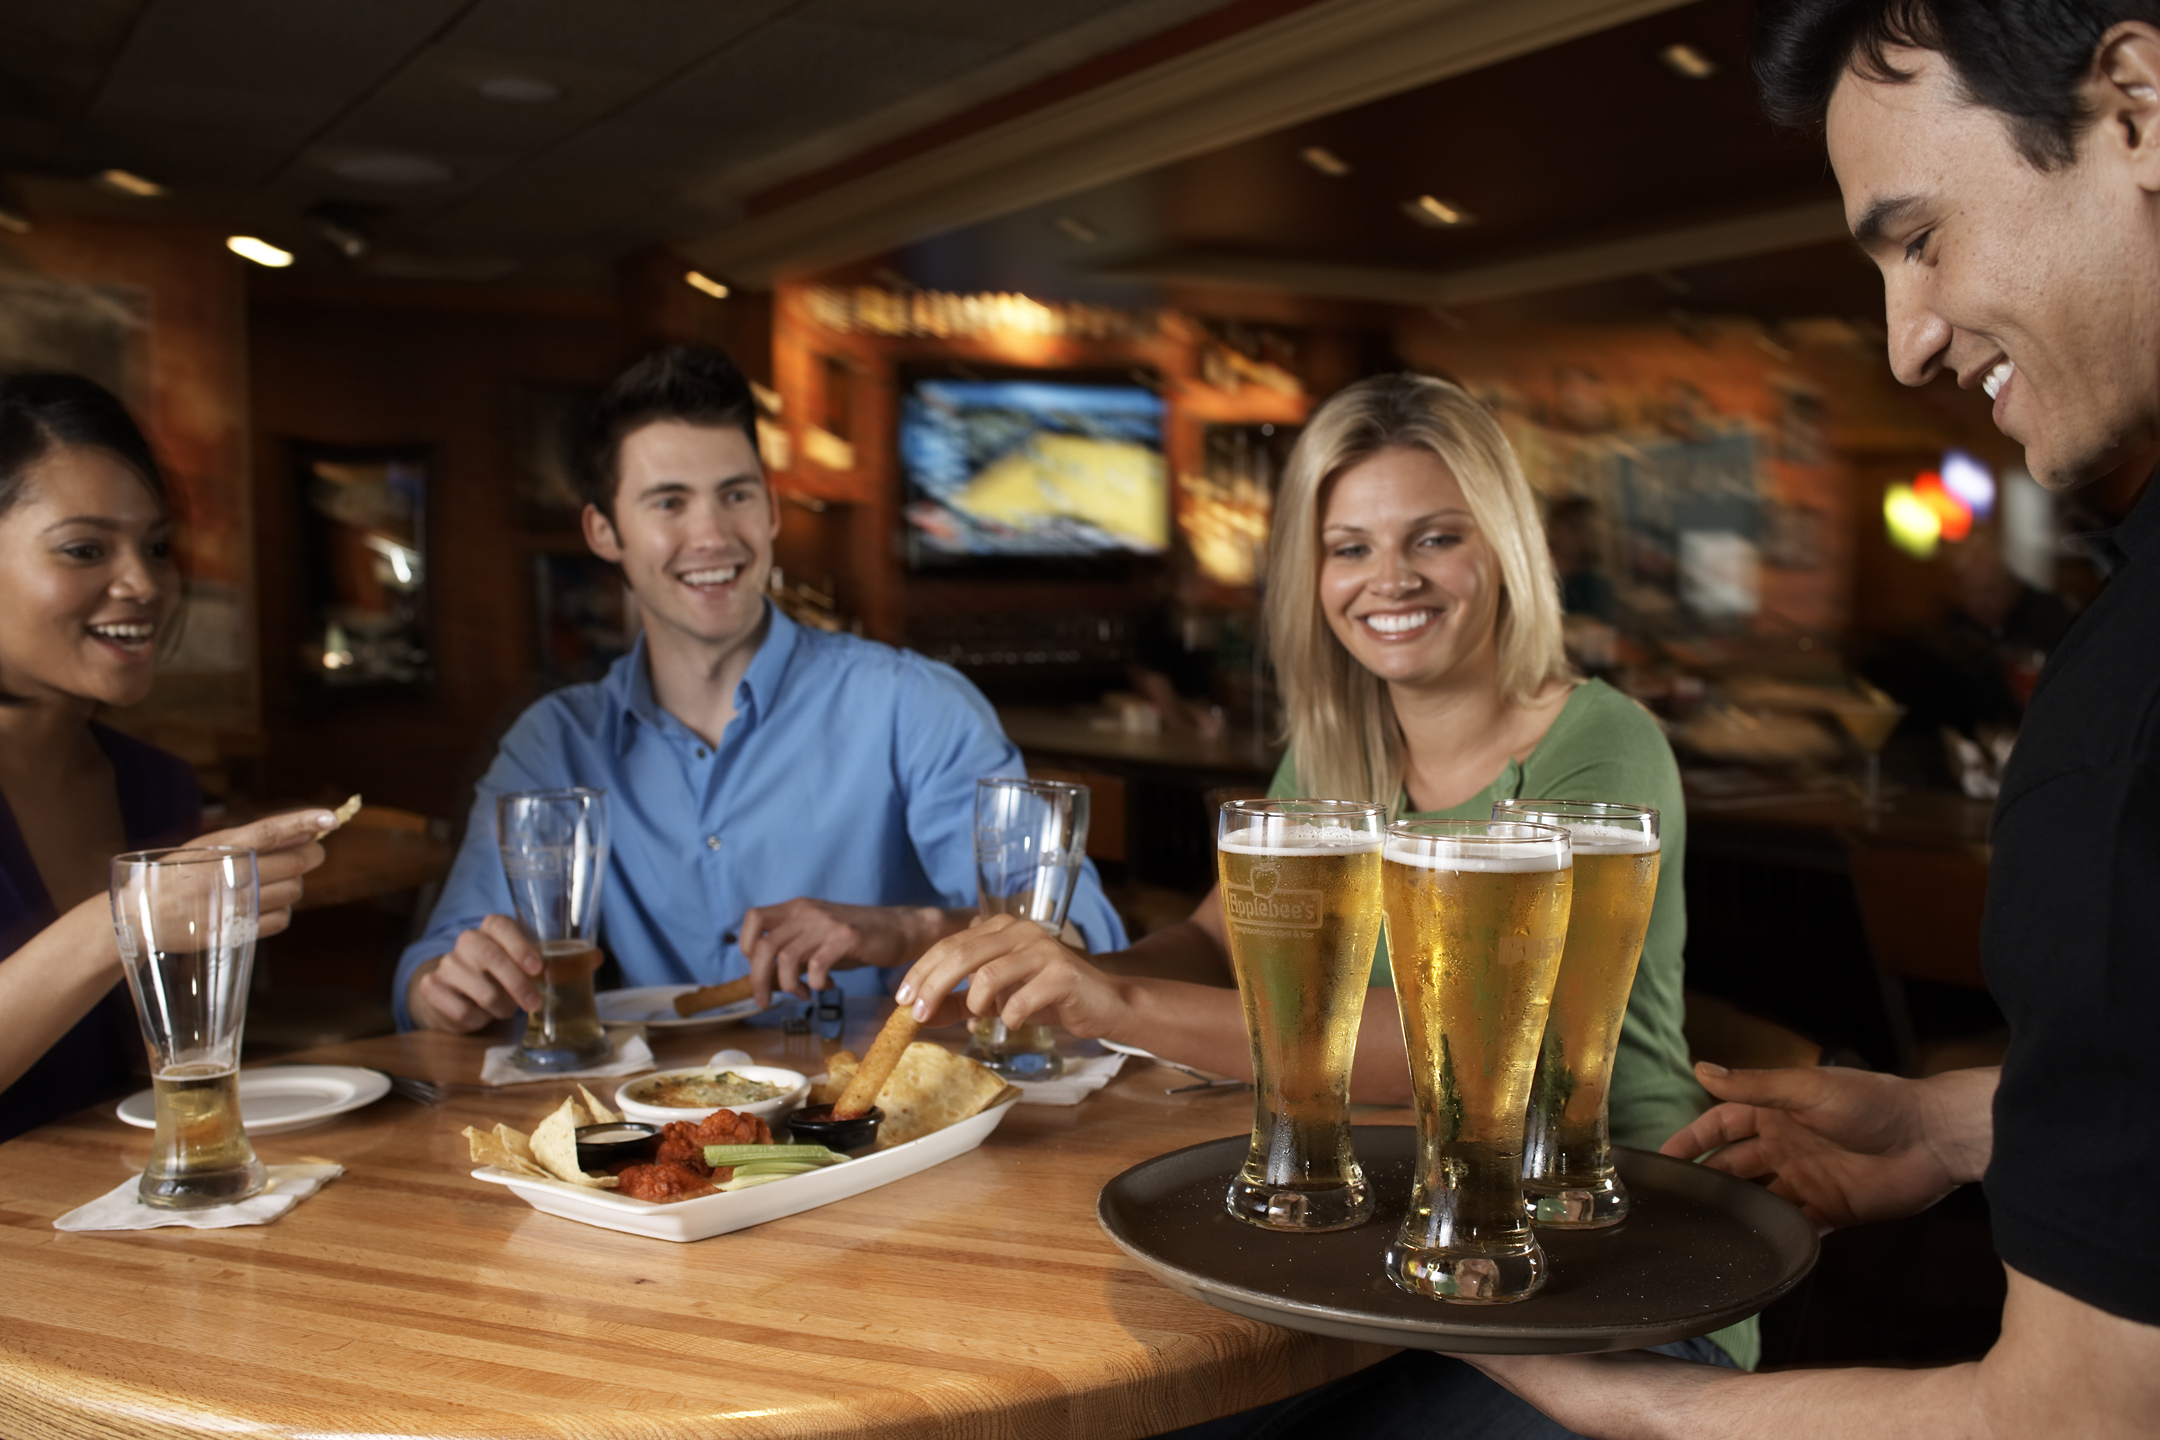 Applebees 2_089.jpg